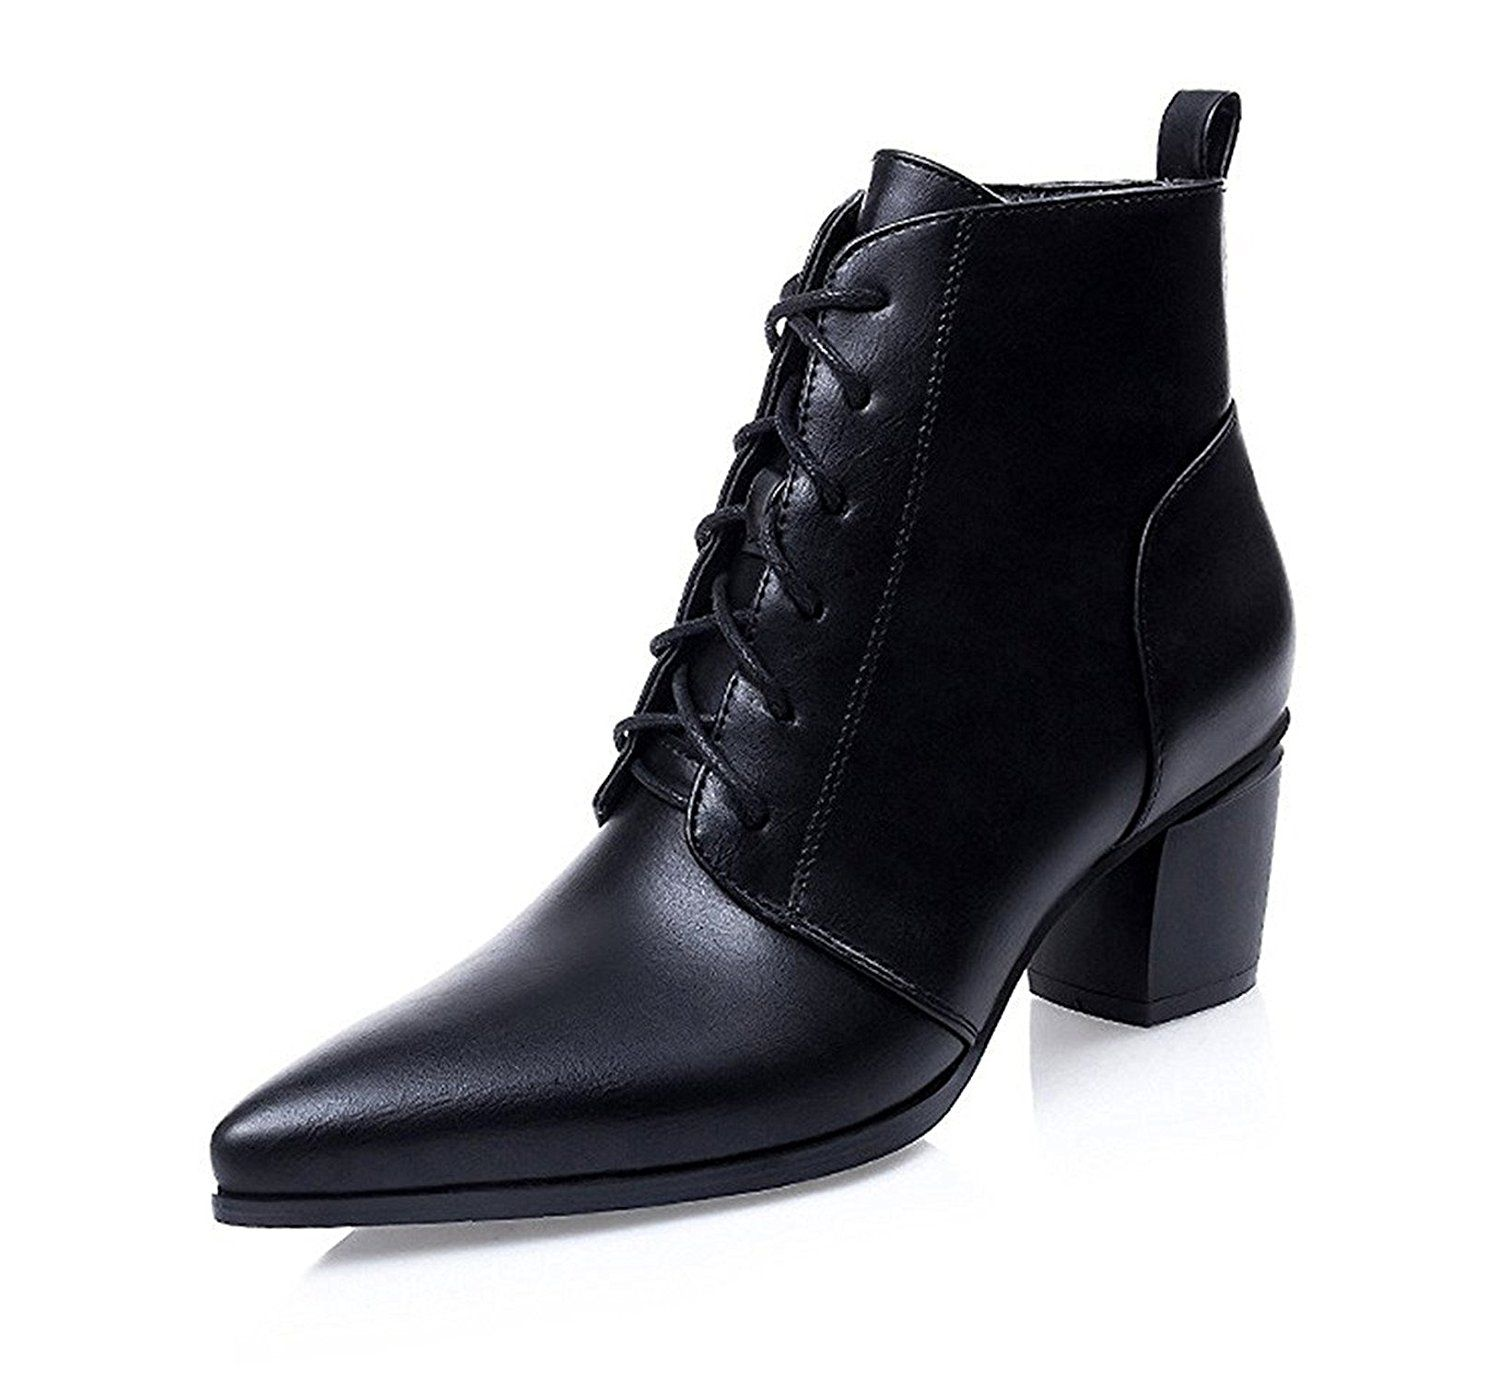 CLOSED MID HEEL BOOT - Classic ankle boots - black 6iGCG